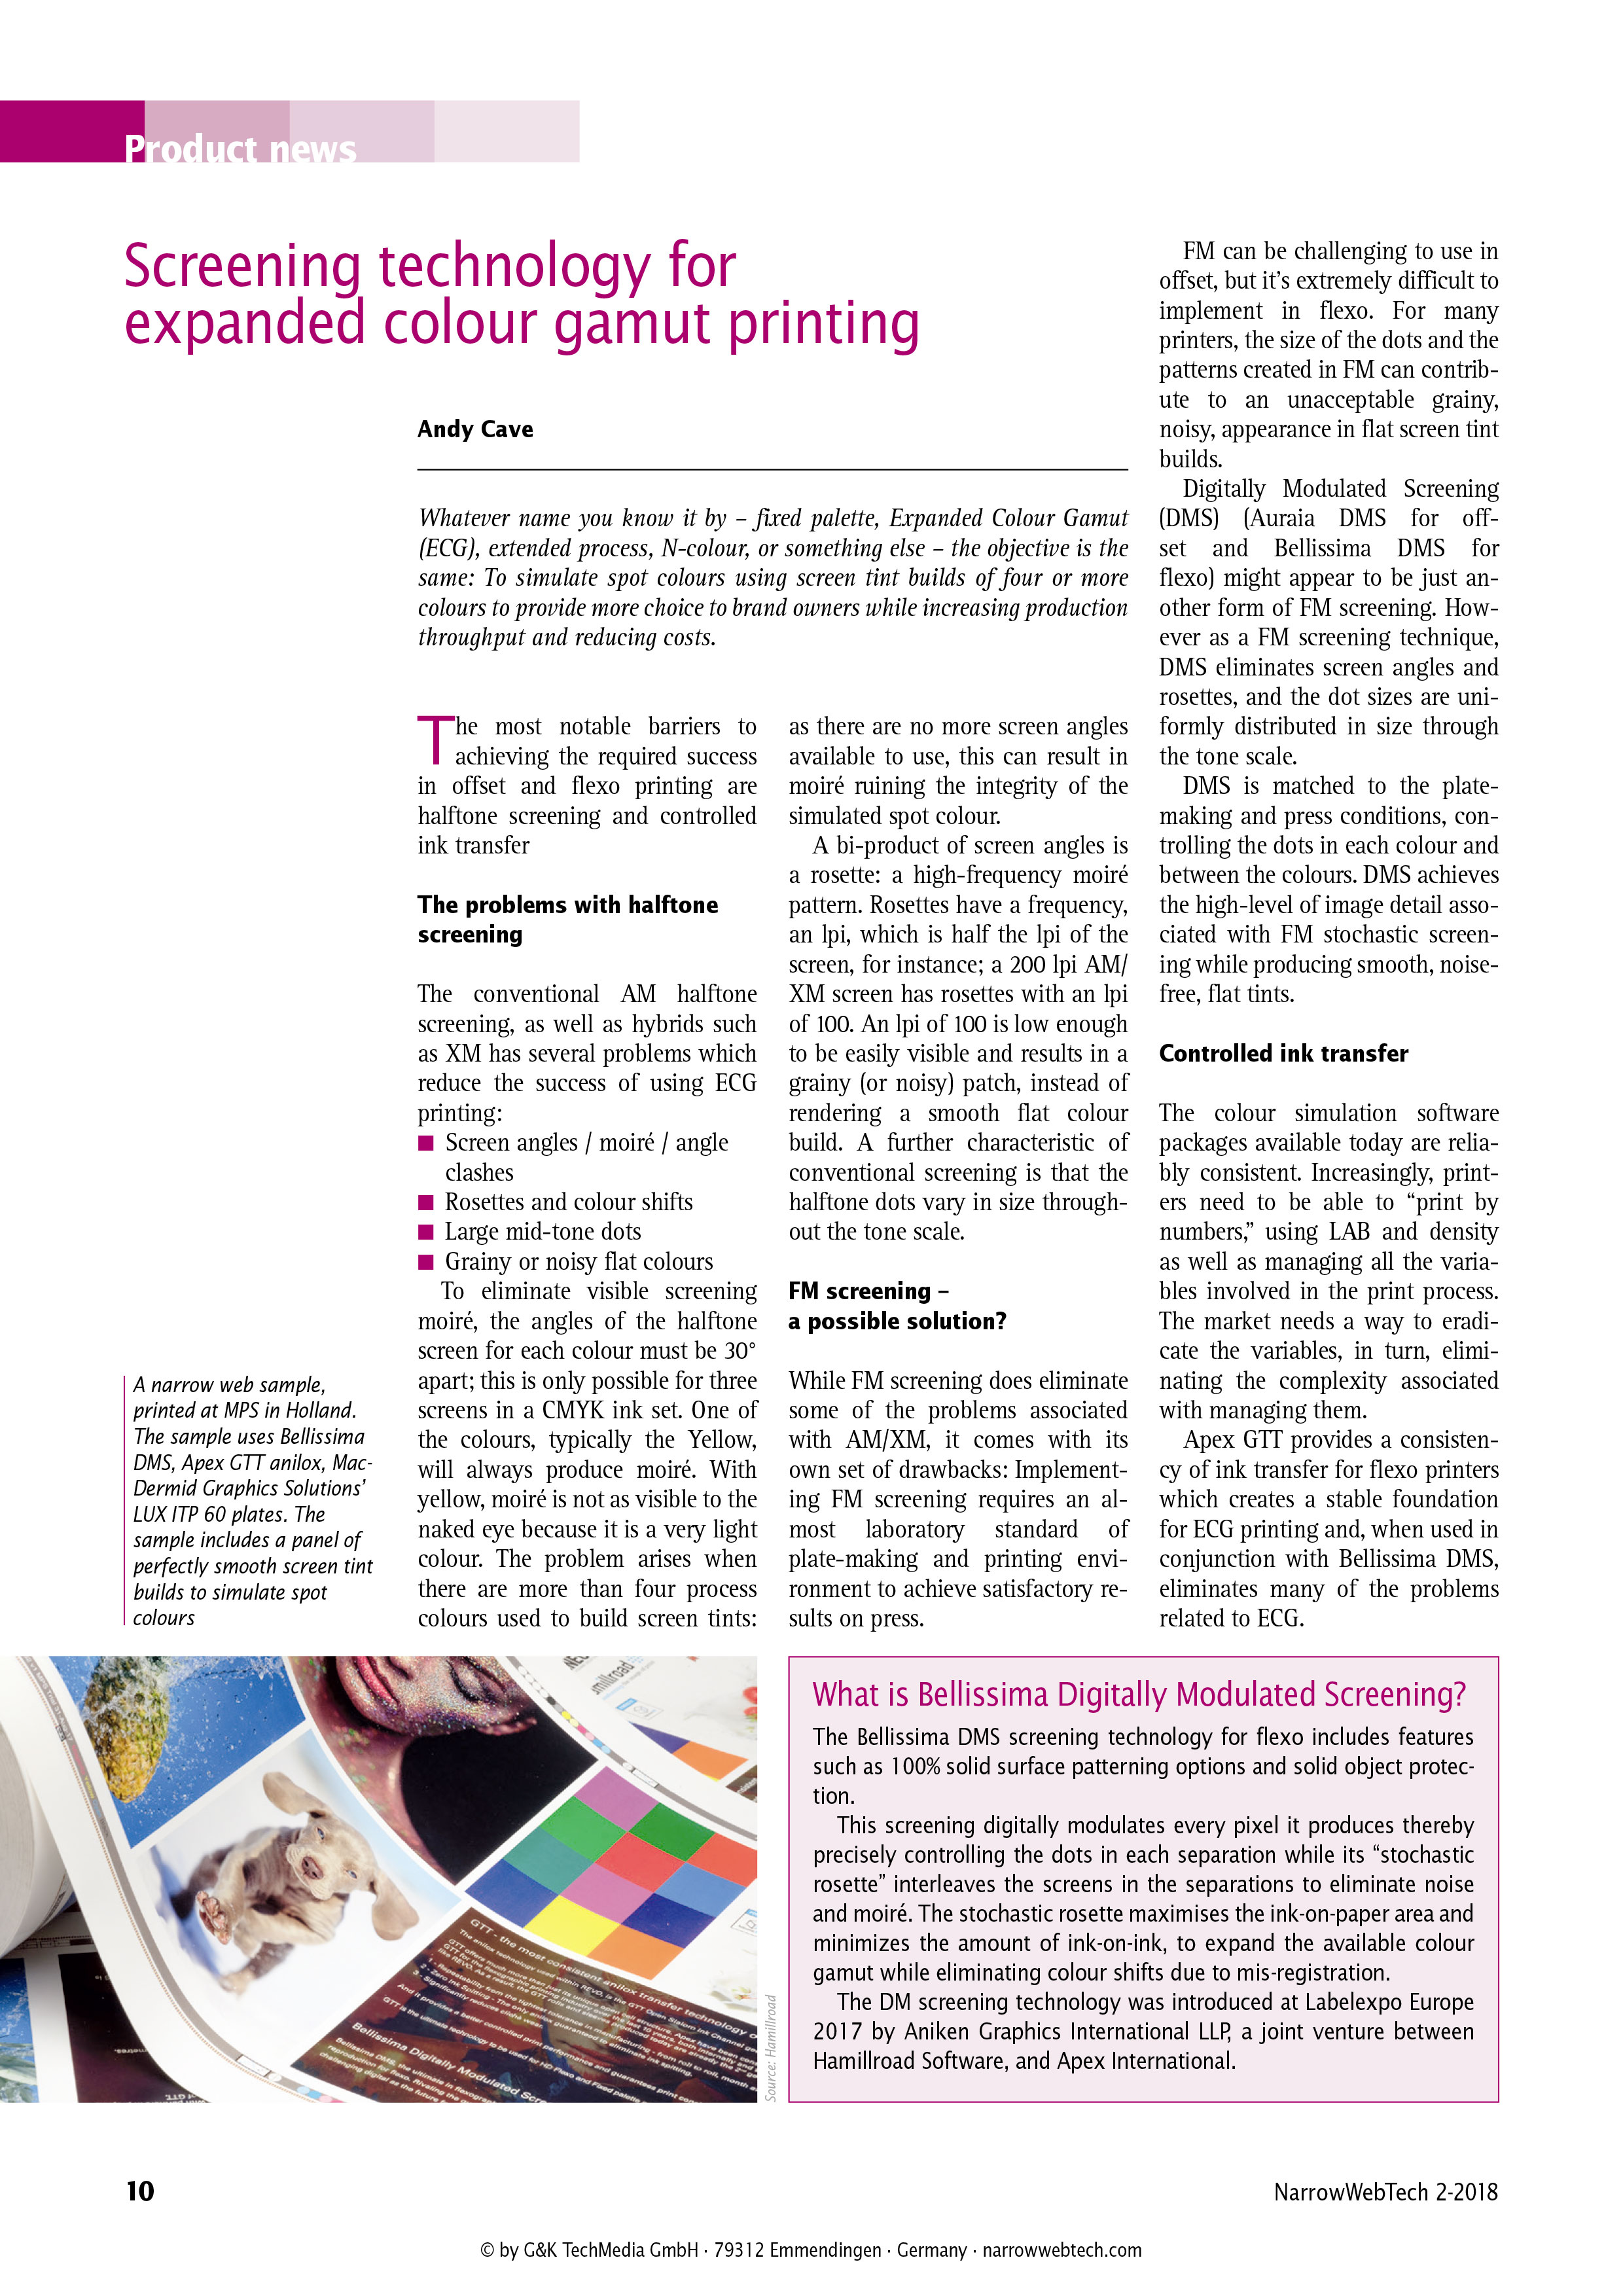 Expanded colour gamut screening for printing flexo best technology